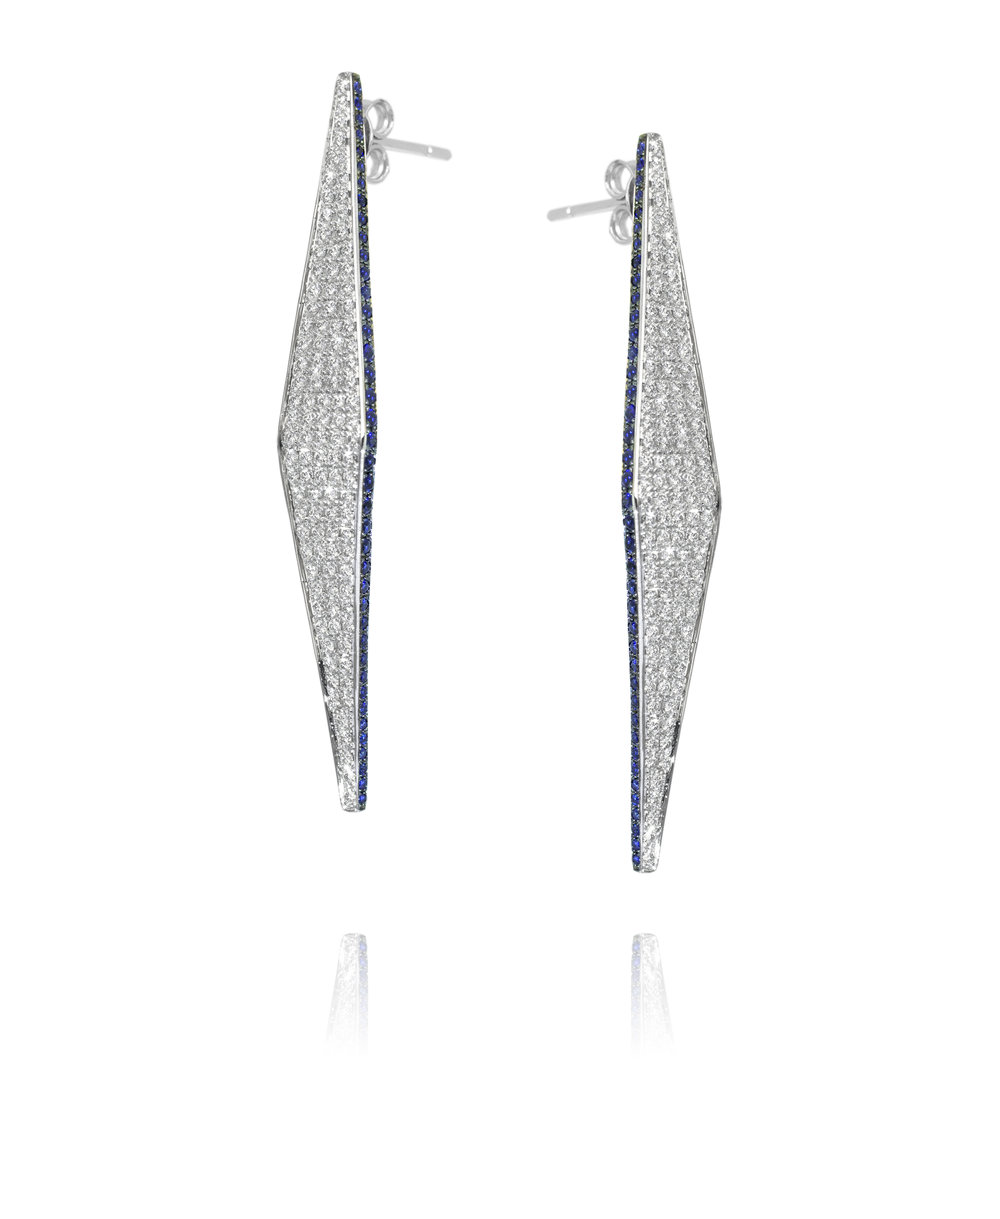 Earrings  18KT White Gold, Diamonds, Sapphires  REF. MOI145